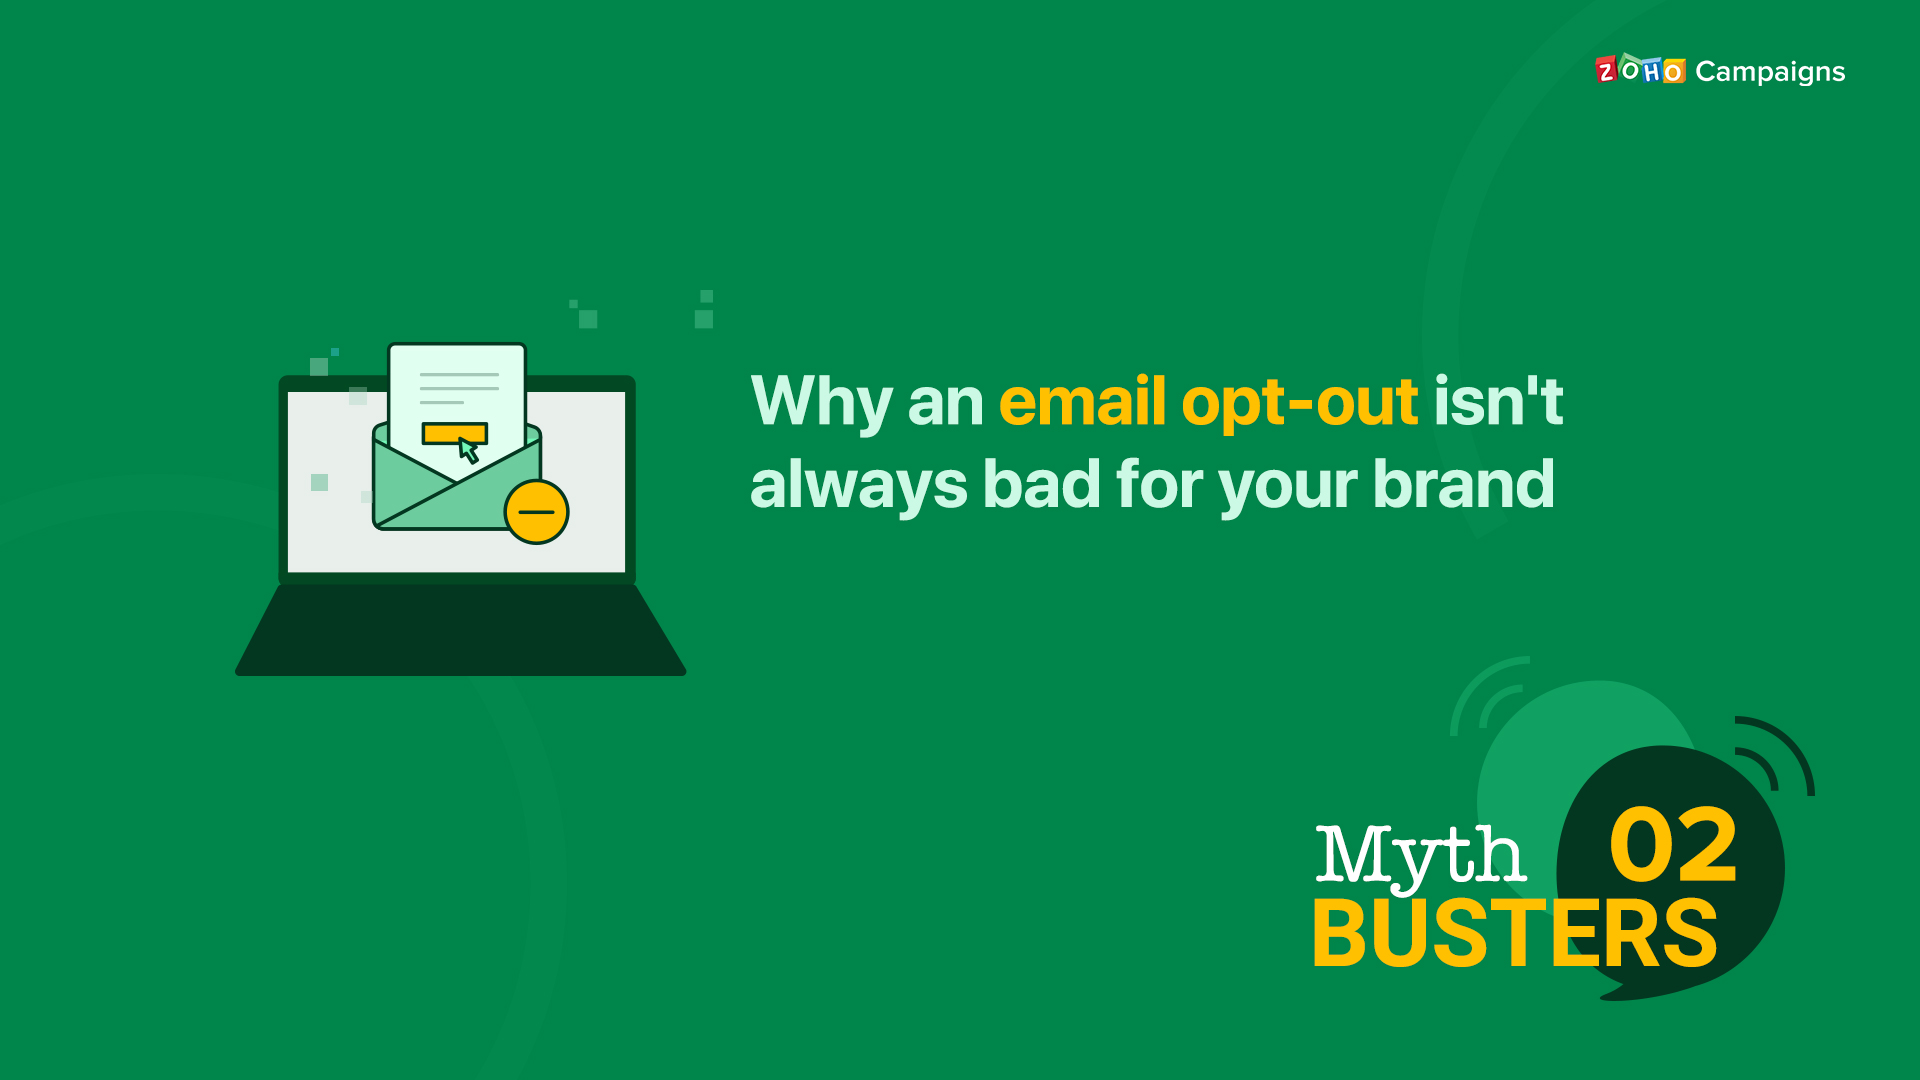 Why an email opt-out isn't always bad for your brand